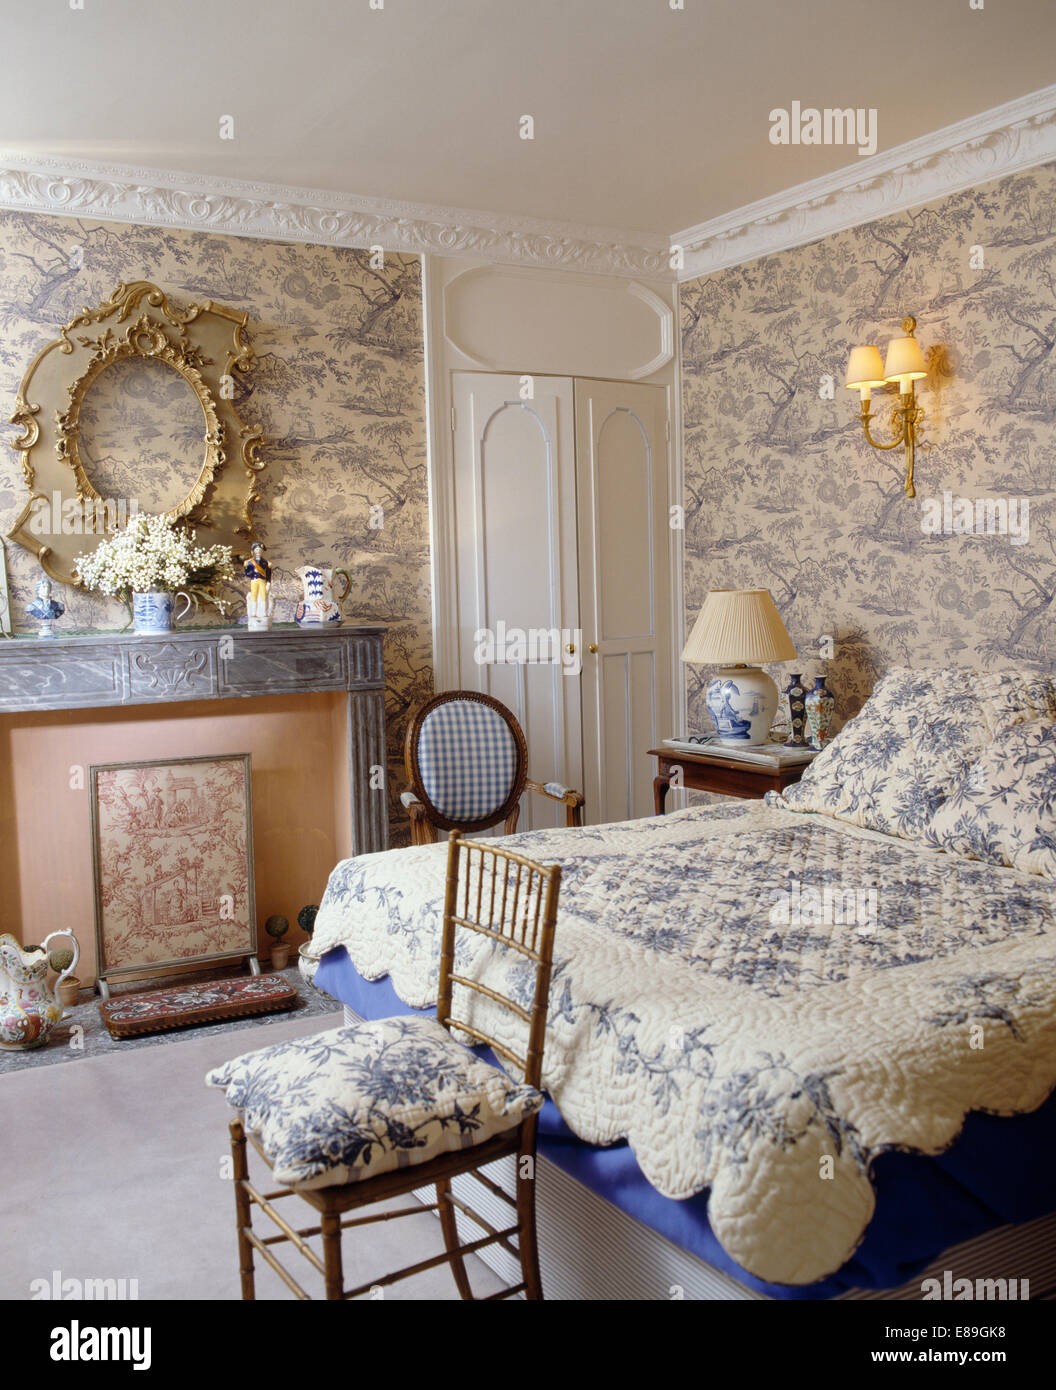 Blue toile de jouy wallpaper in bedroom with blue floral for Blue and white bedroom wallpaper